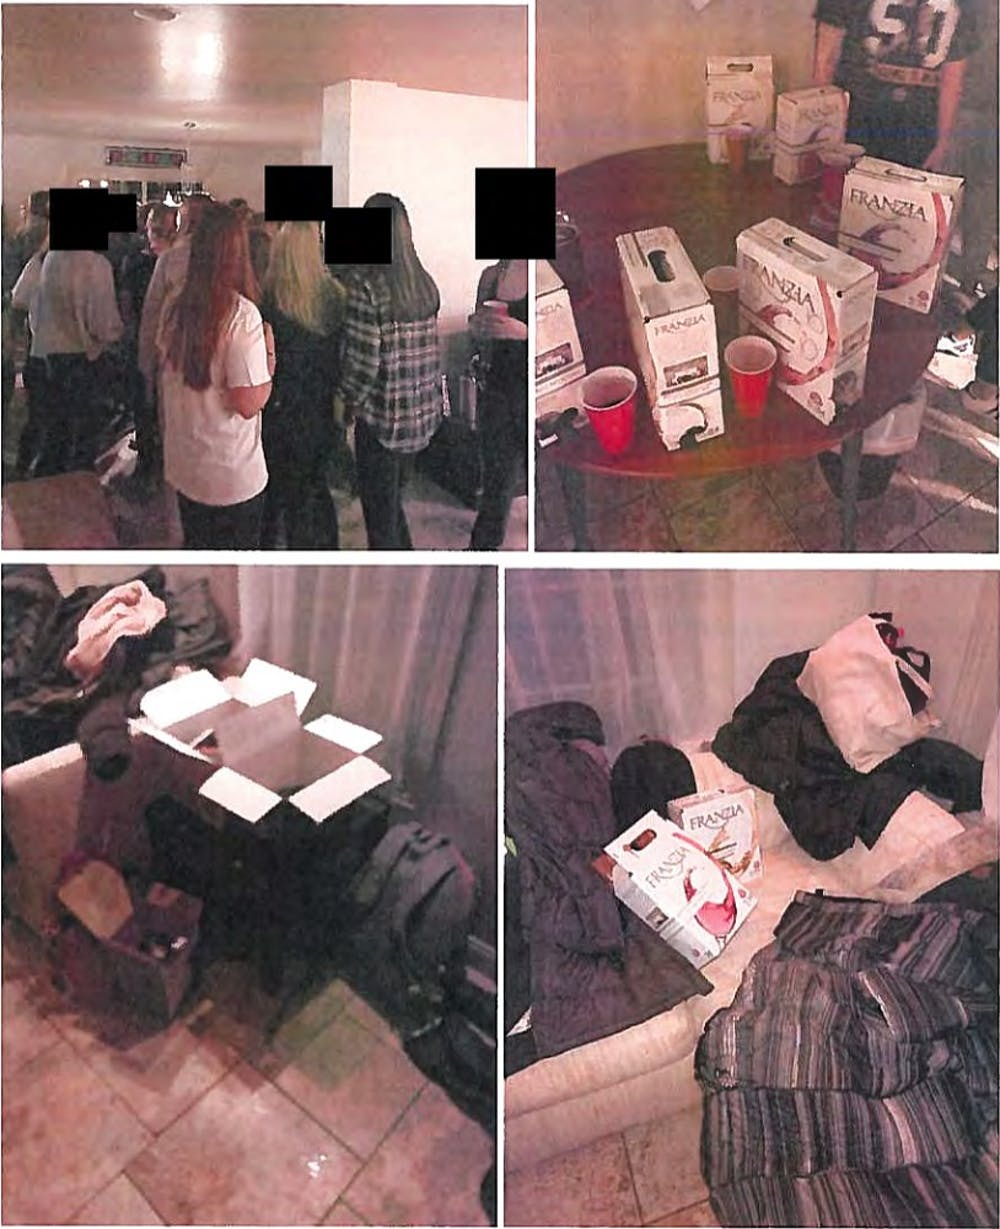 Photos attached to redacted report about the Feb. 10 Phi Mu report.